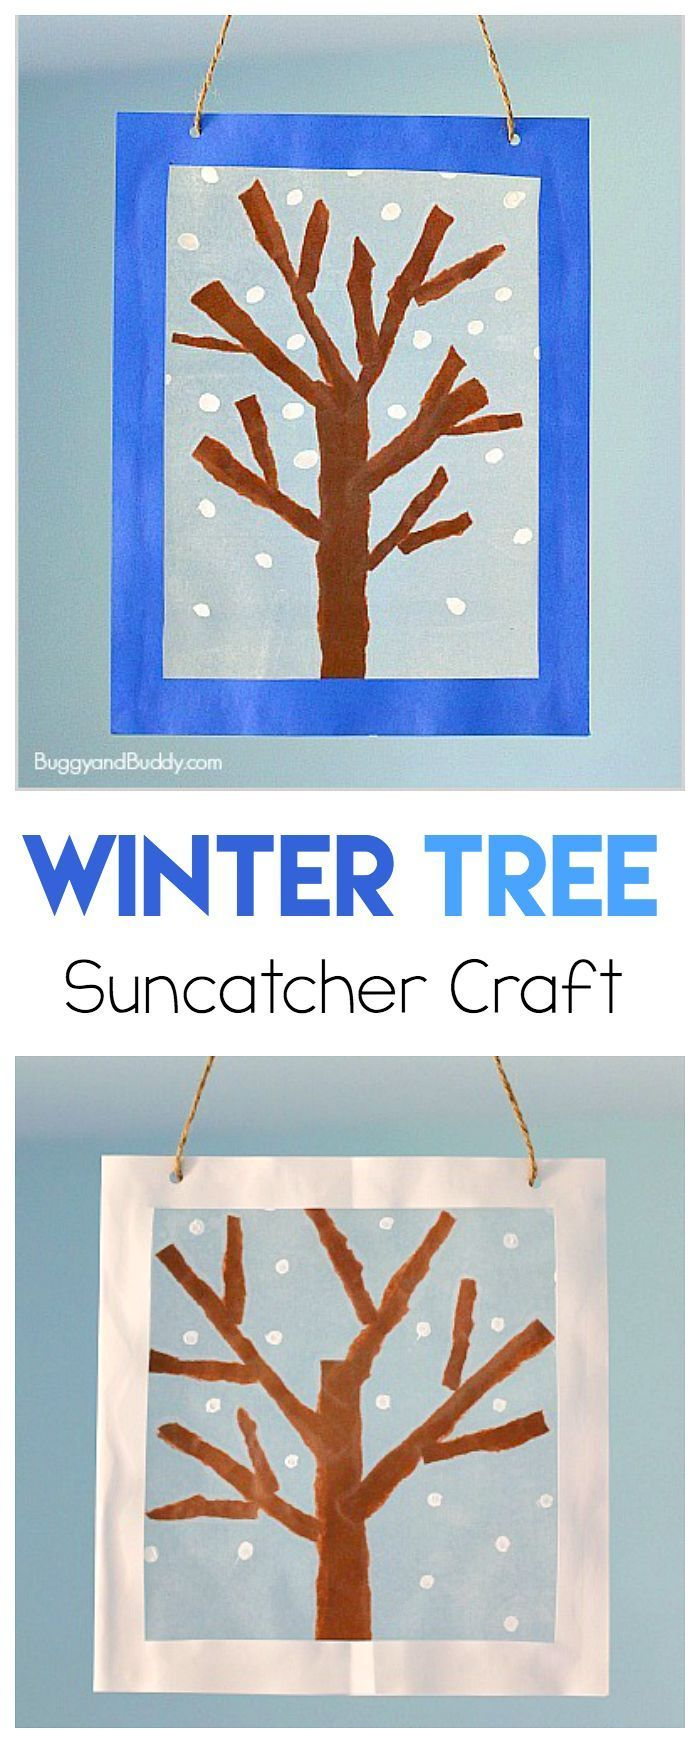 Easy Winter Craft for Kids: Tear Art Winter Tree Suncatcher ~ http://BuggyandBuddy.com